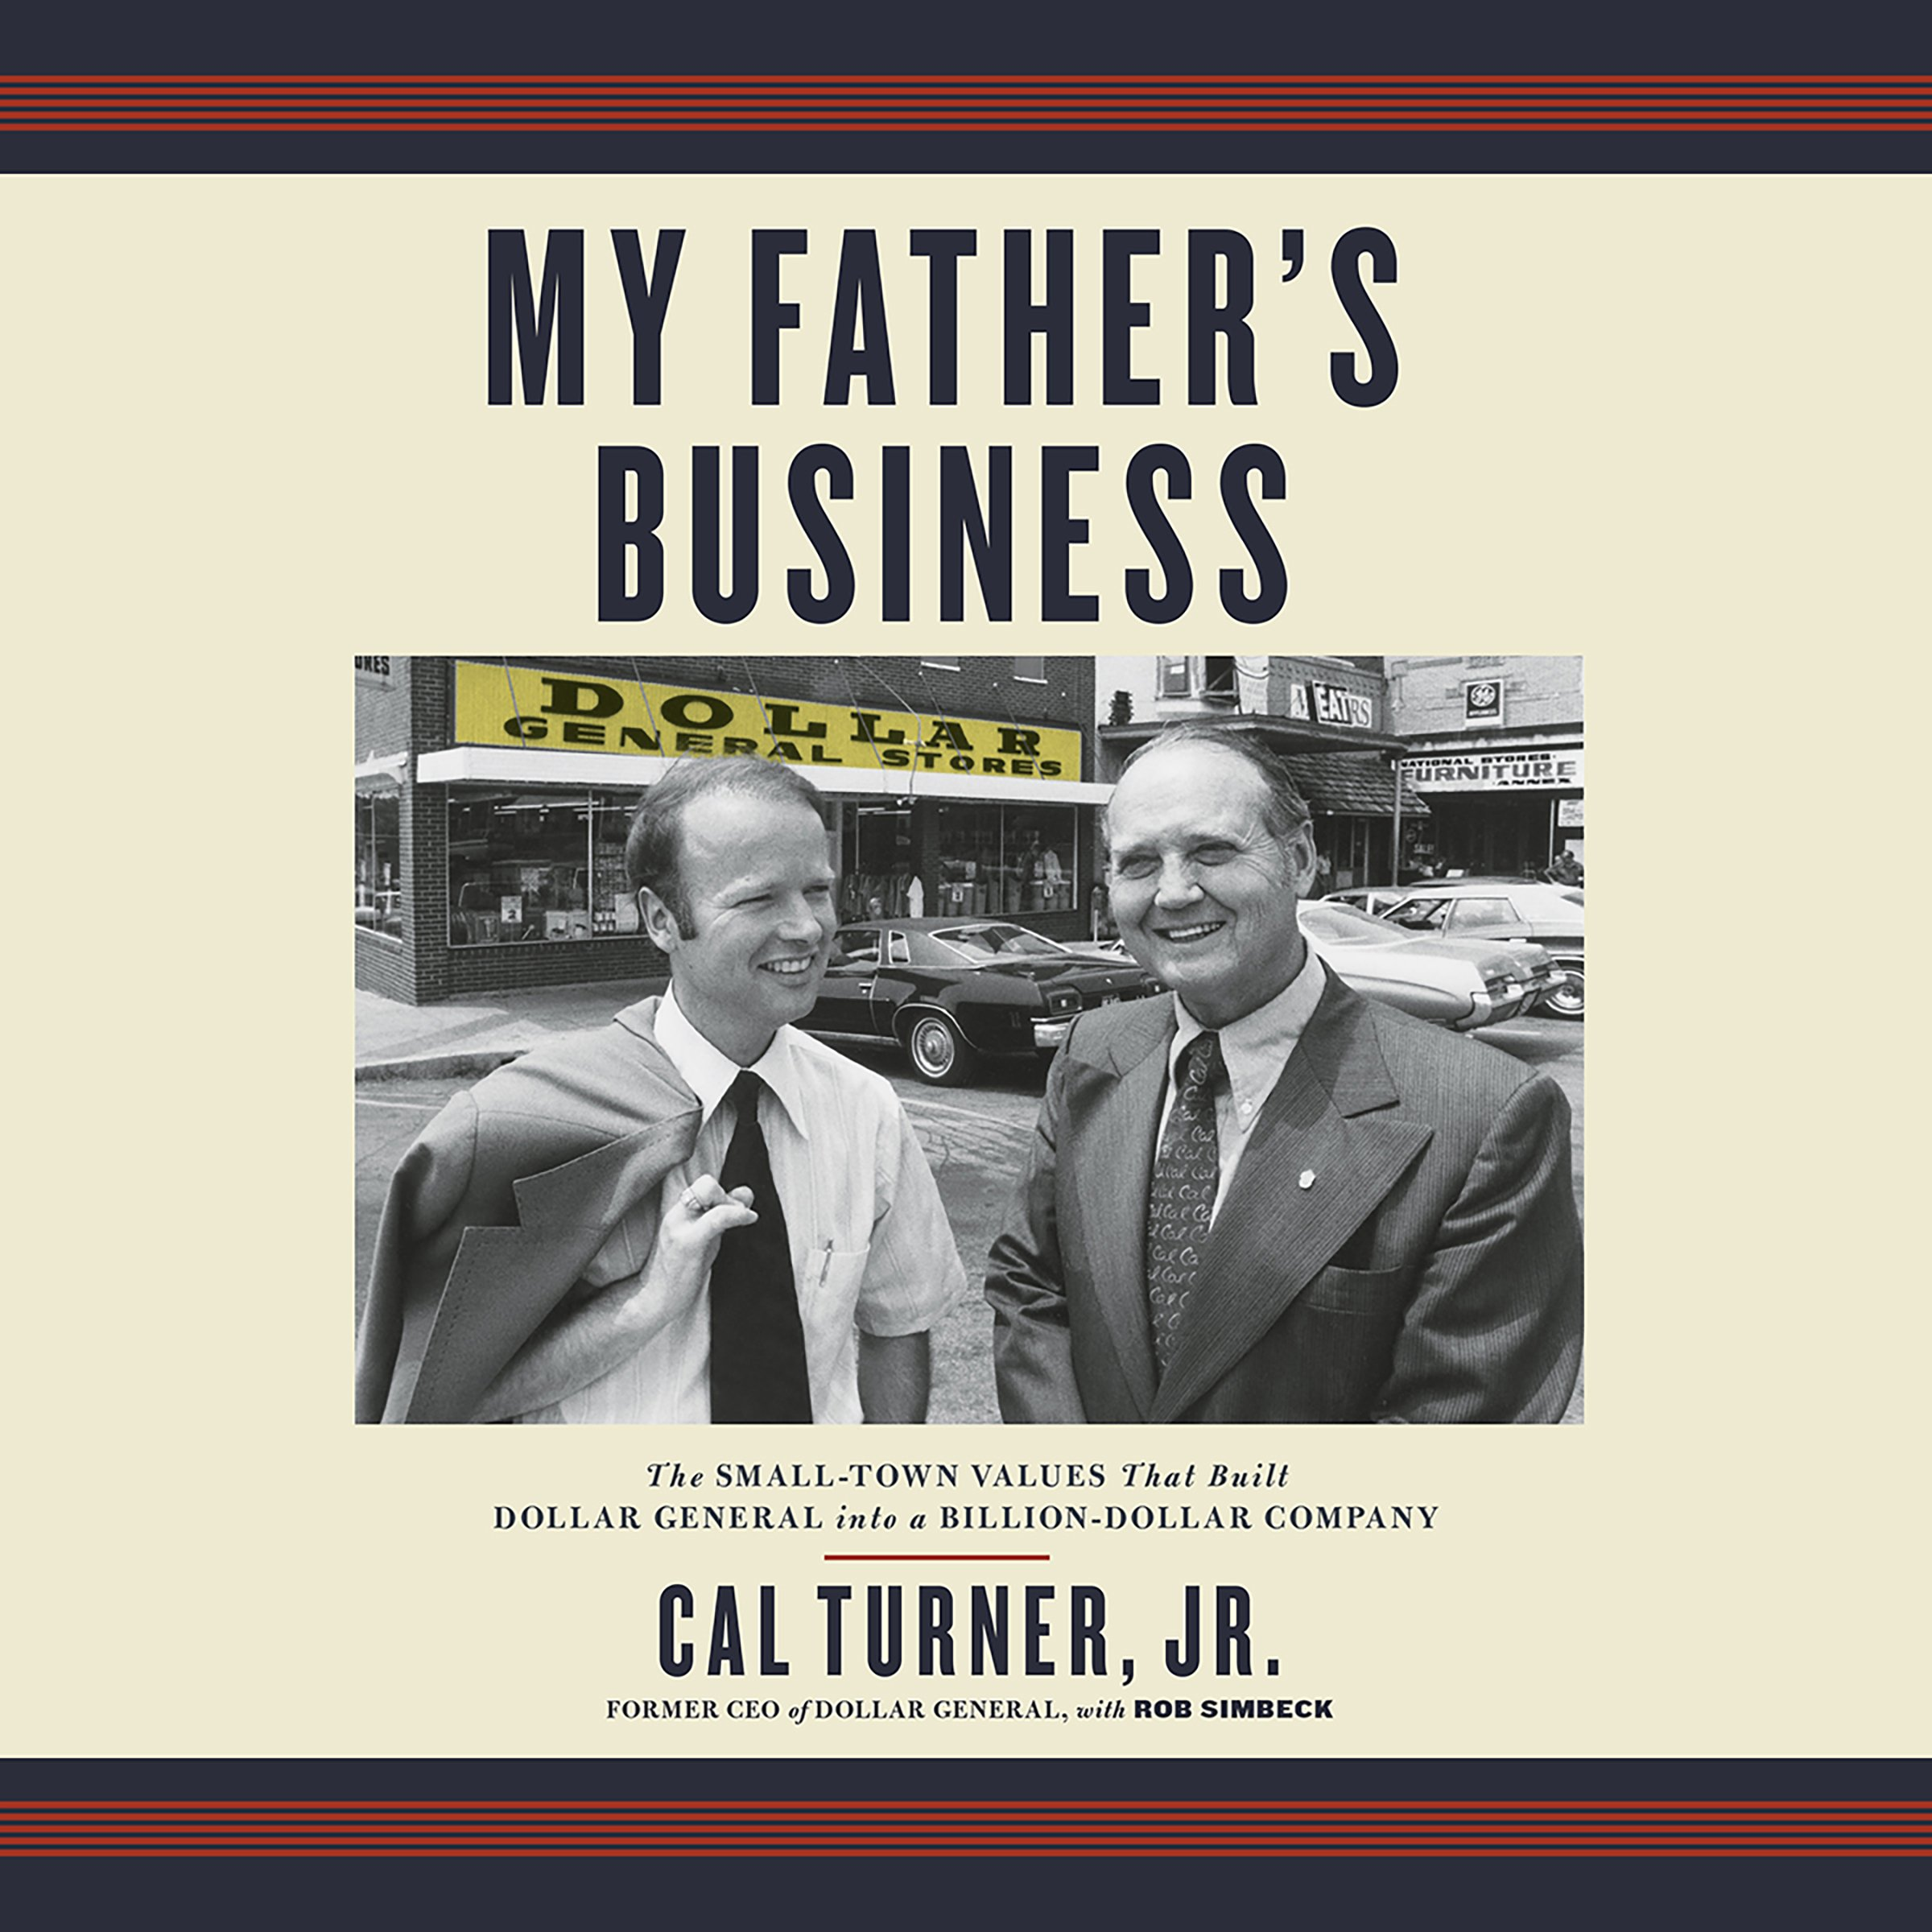 My Father's Business: The Small-Town Values That Built Dollar General into a Billion-Dollar Company